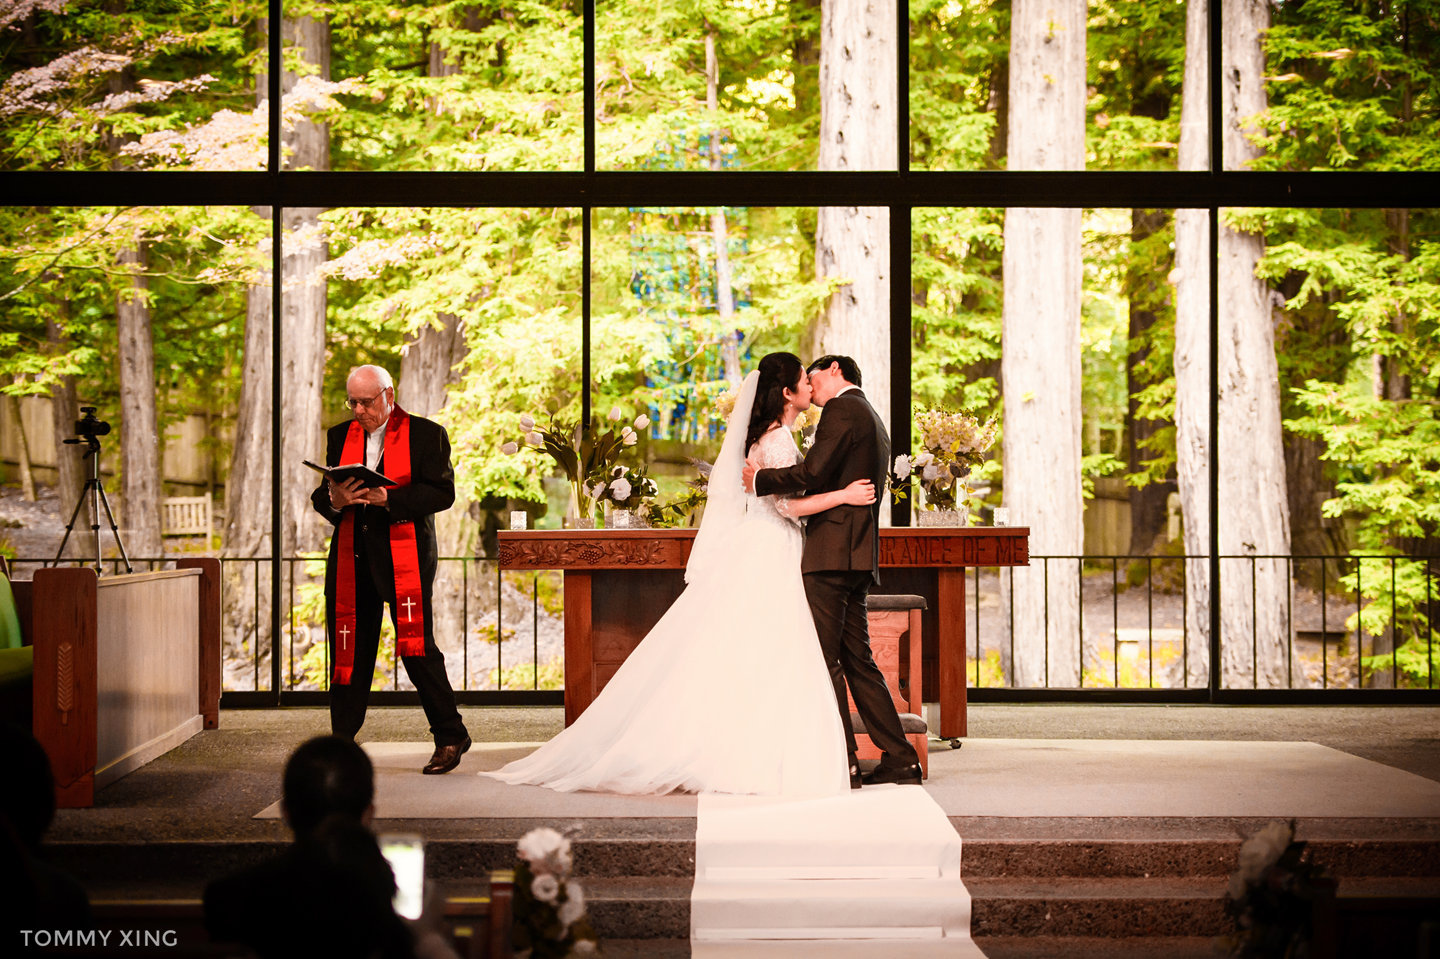 San Francisco Wedding Photography Valley Presbyterian Church WEDDING Tommy Xing Photography 洛杉矶旧金山婚礼婚纱照摄影师089.jpg